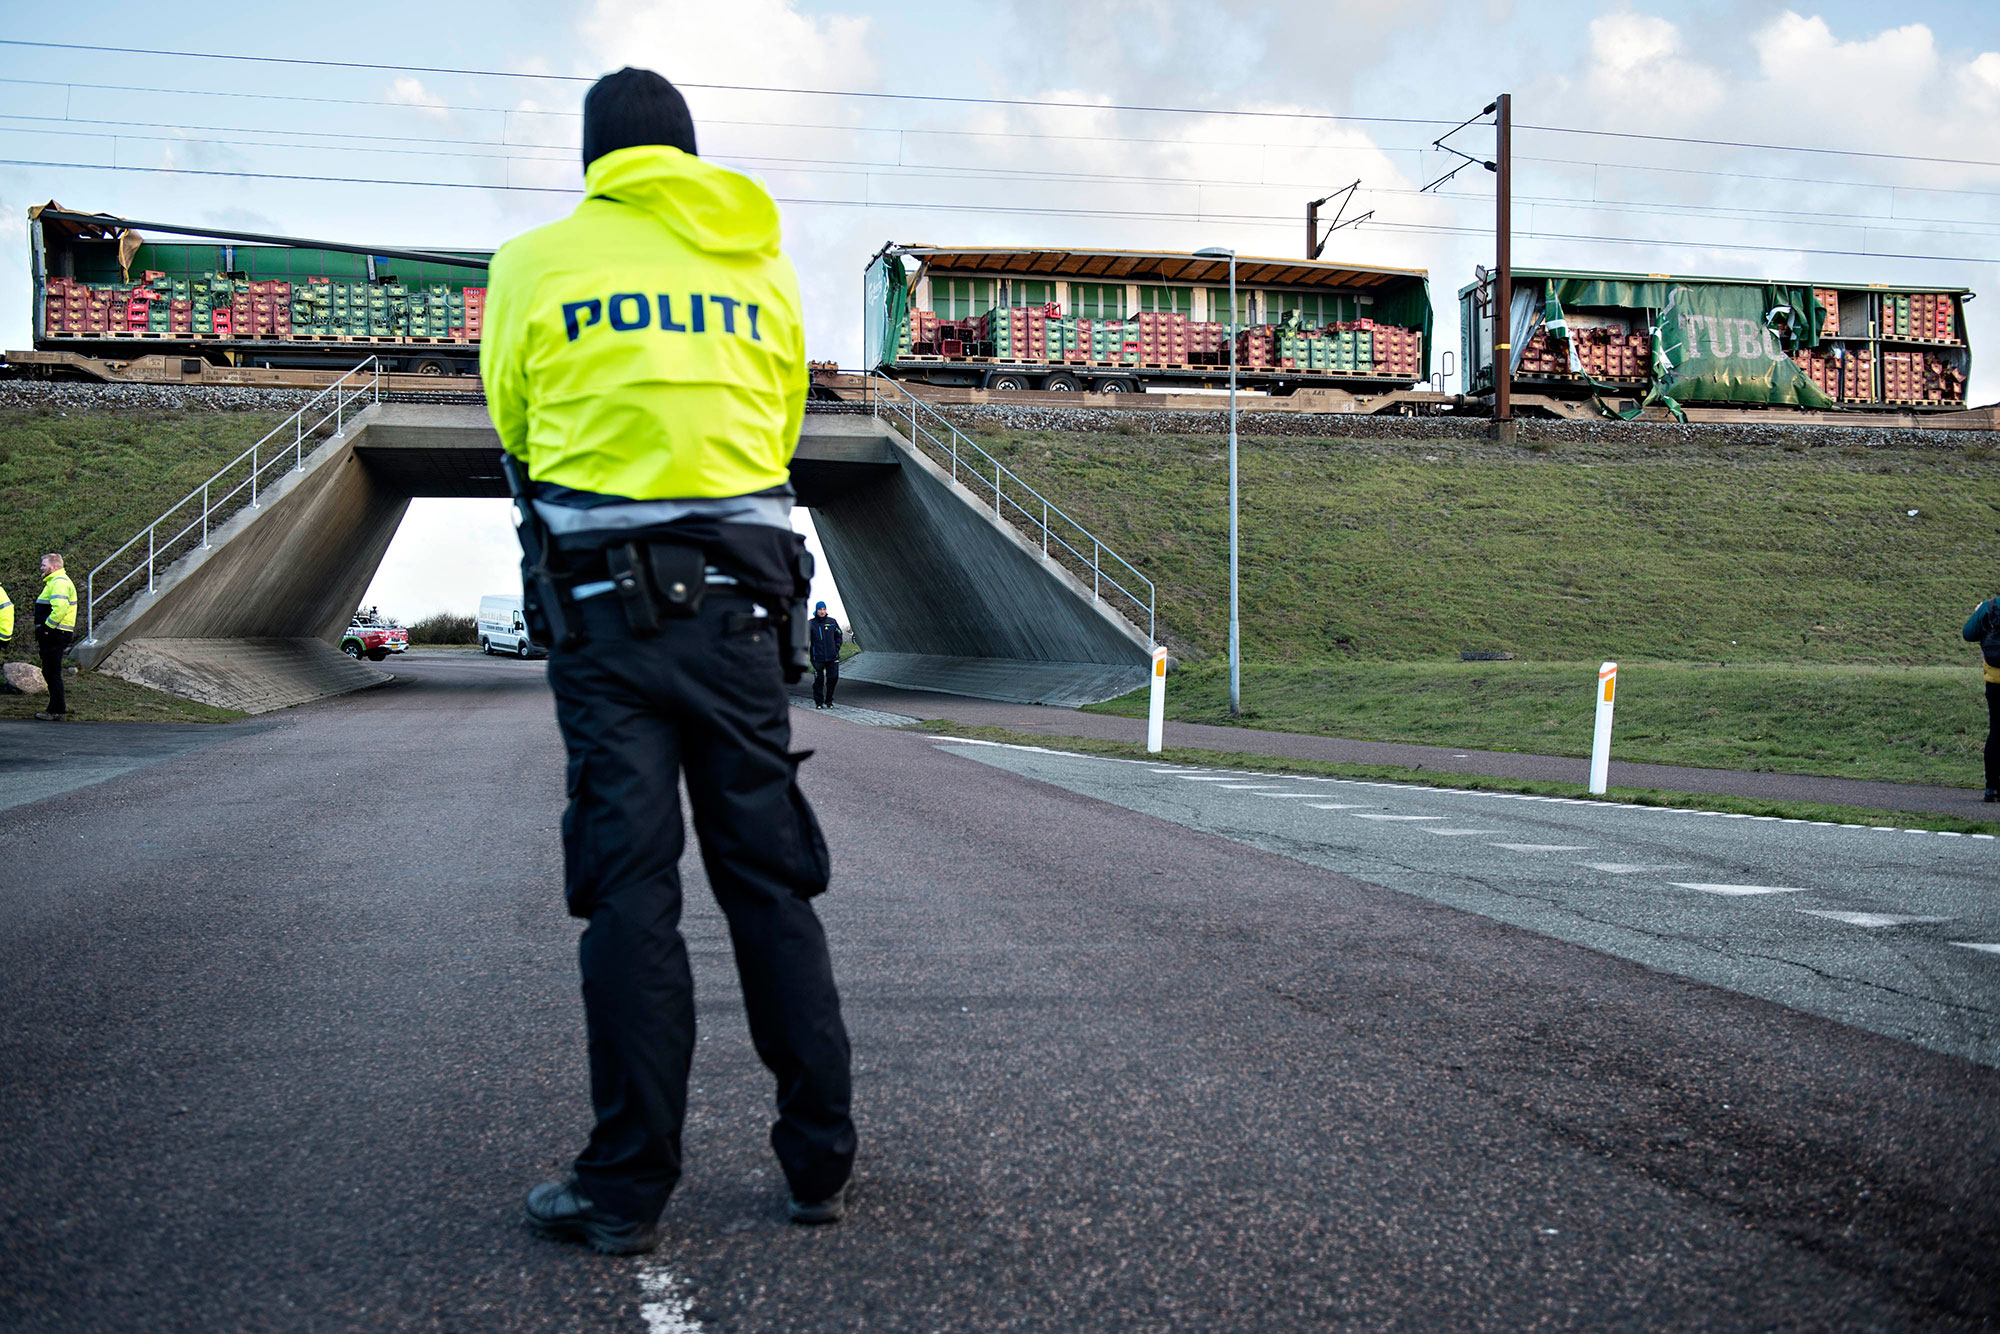 <div class='meta'><div class='origin-logo' data-origin='none'></div><span class='caption-text' data-credit='MICHAEL BAGER/AFP/Getty Images'>A policeman blocks the road as in background can be seen a cargo train with damaged containers after access to the Great Belt Bridge was closed following a railway accident.</span></div>